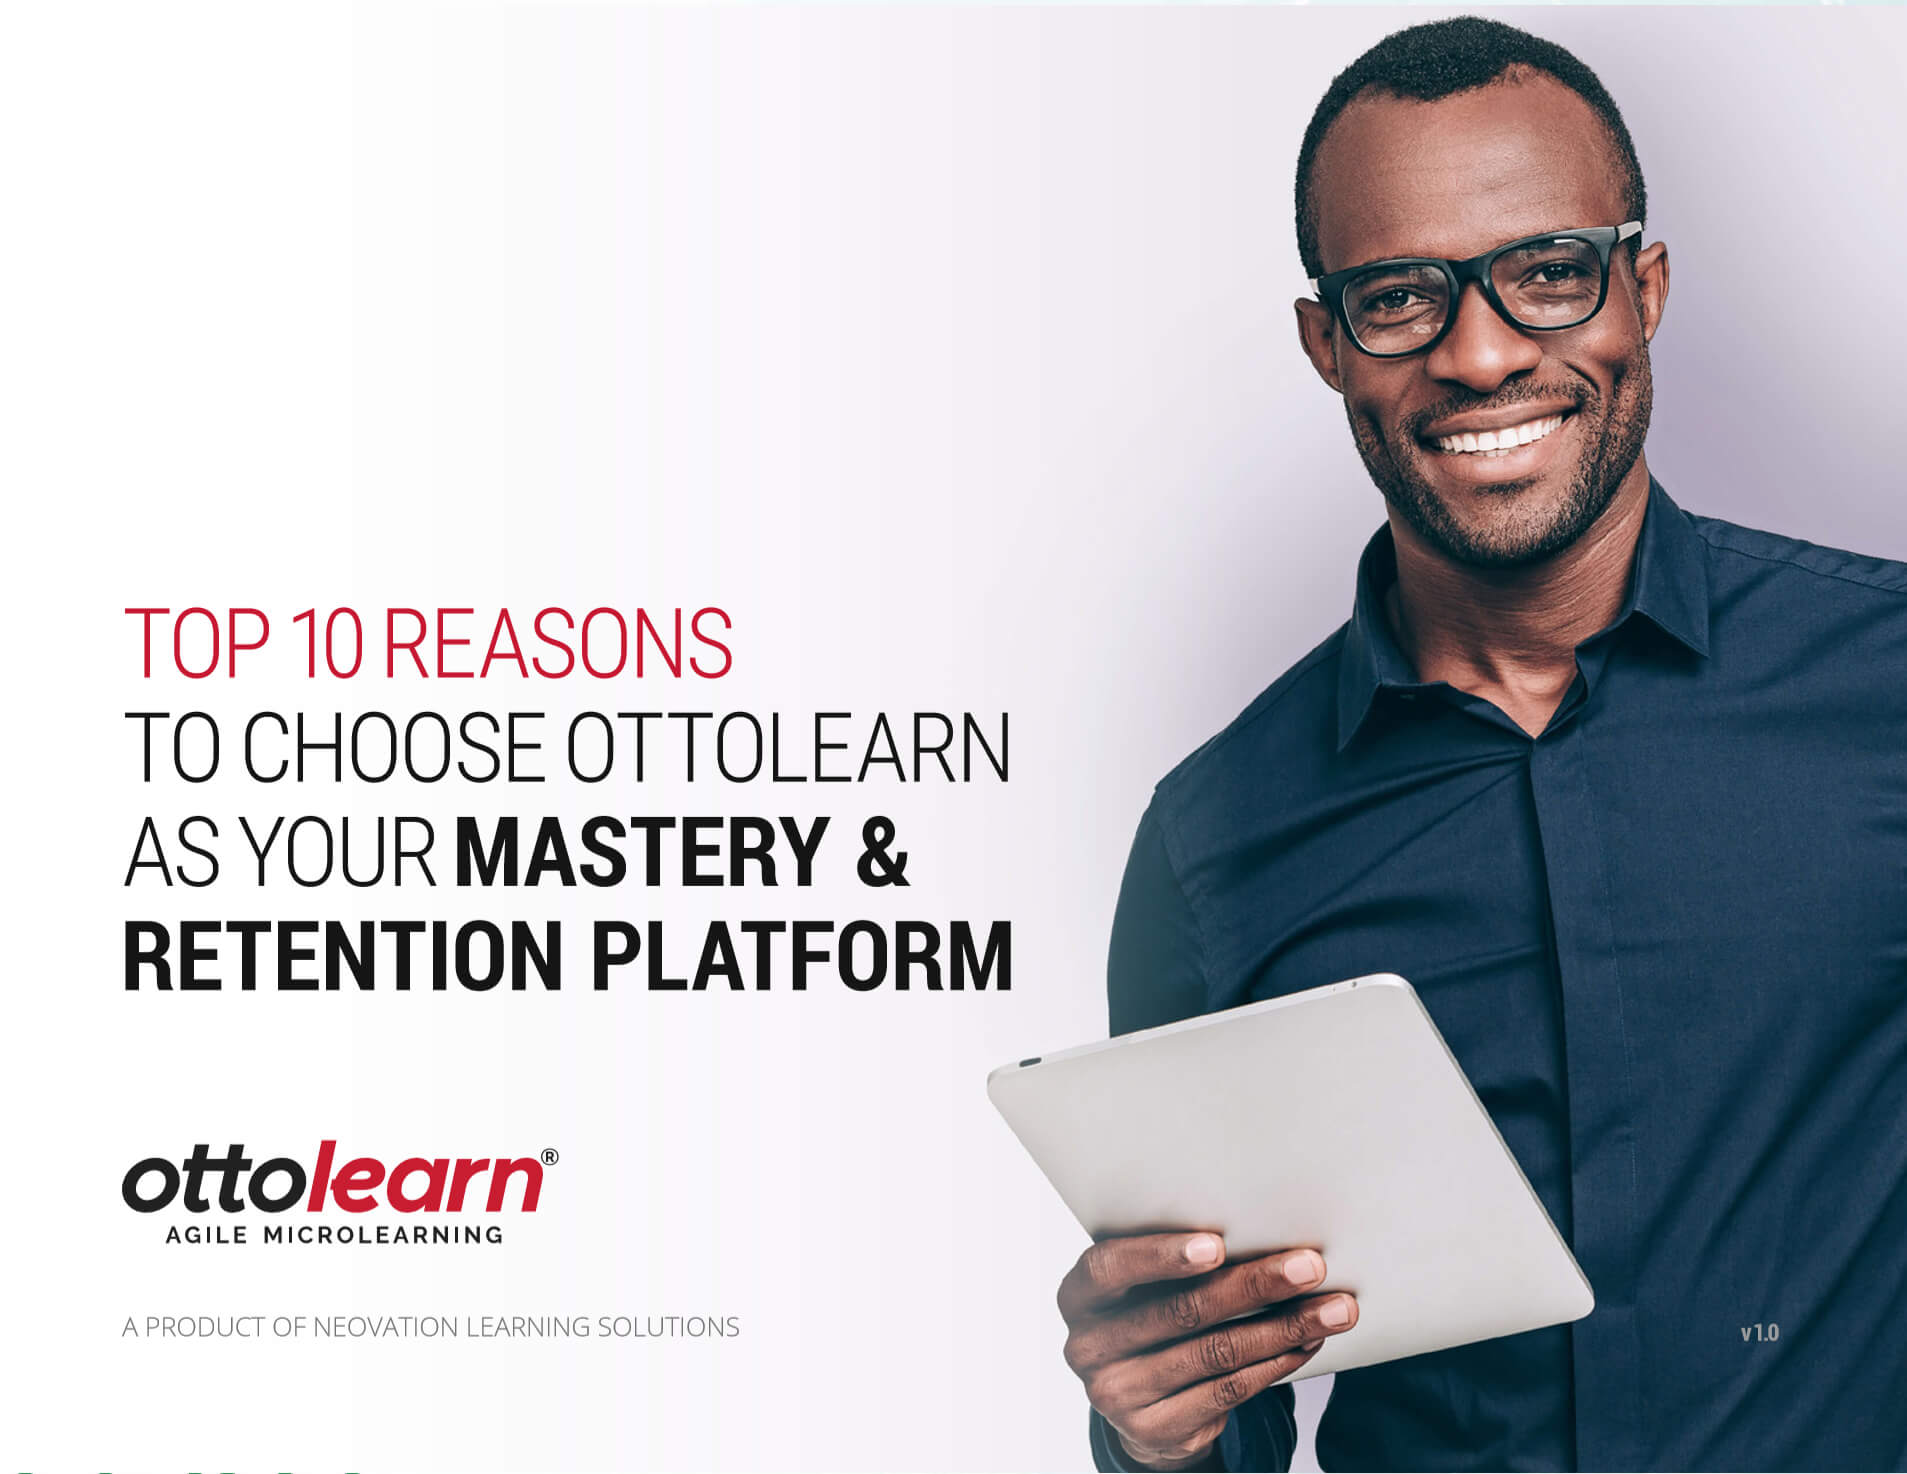 Top 10 Reasons to Choose OttoLearn as Your Mastery & Retention Platform - OttoLearn Personalized Learning